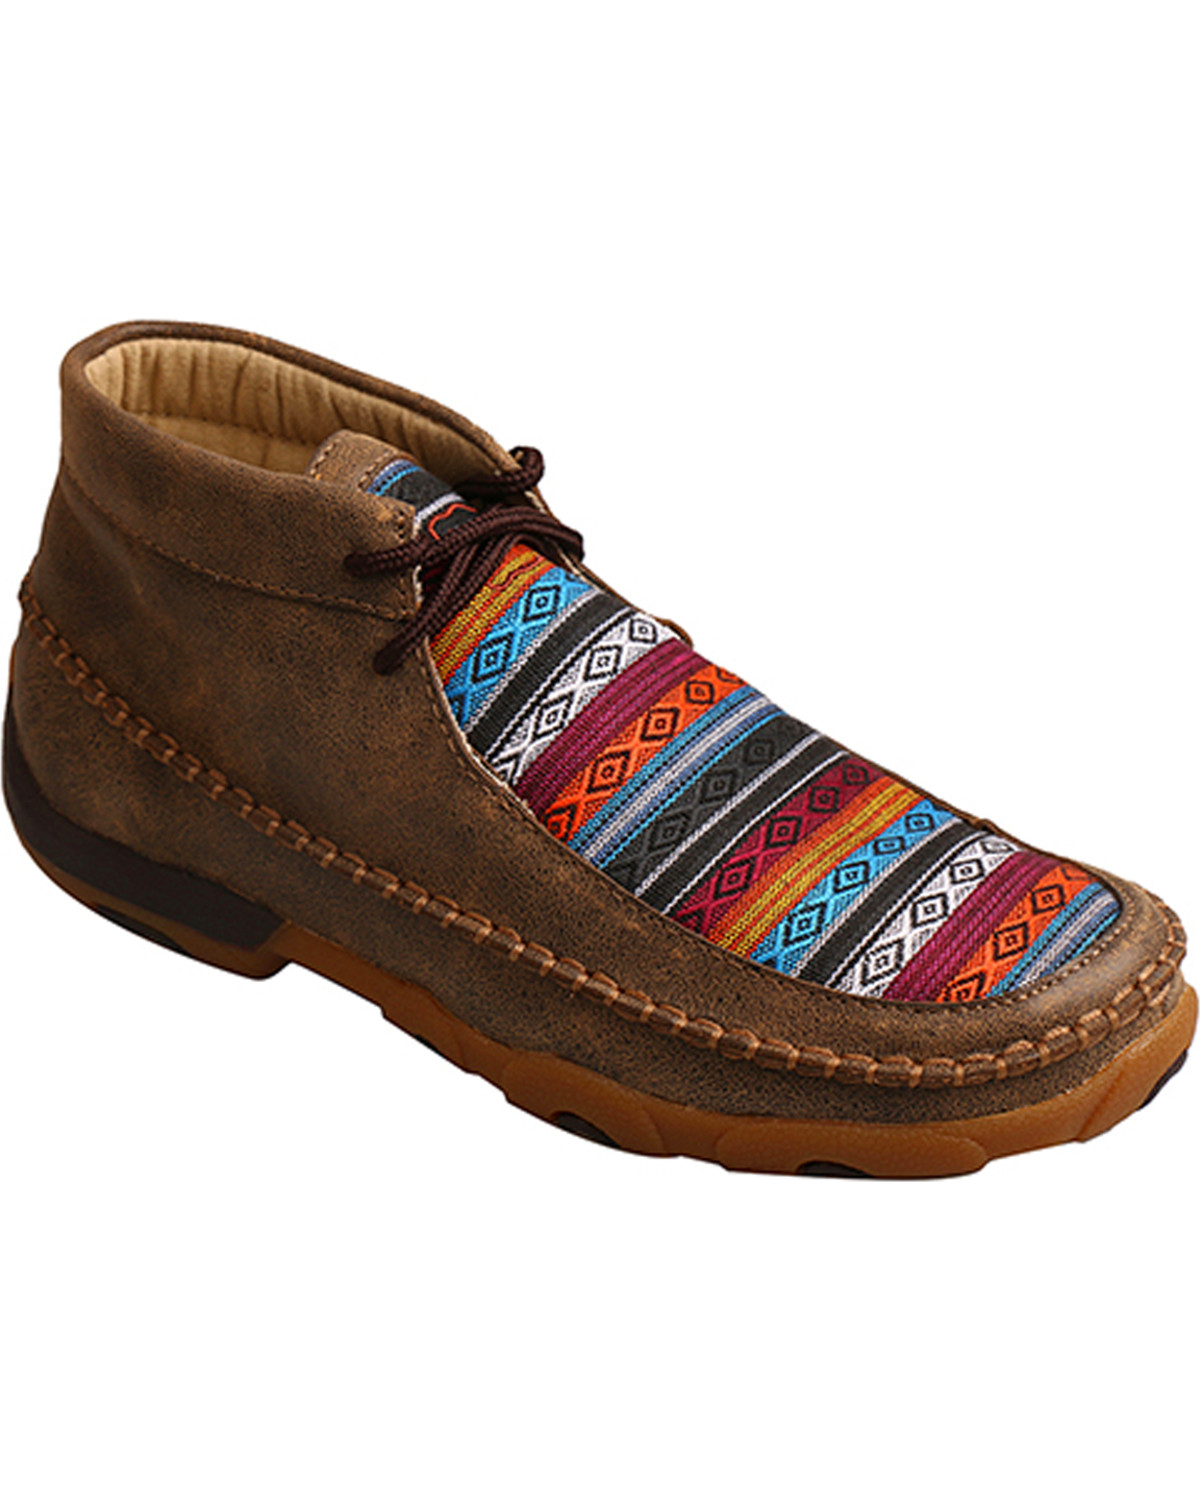 Twisted X Women's Multi-Colored Driving Moccasins